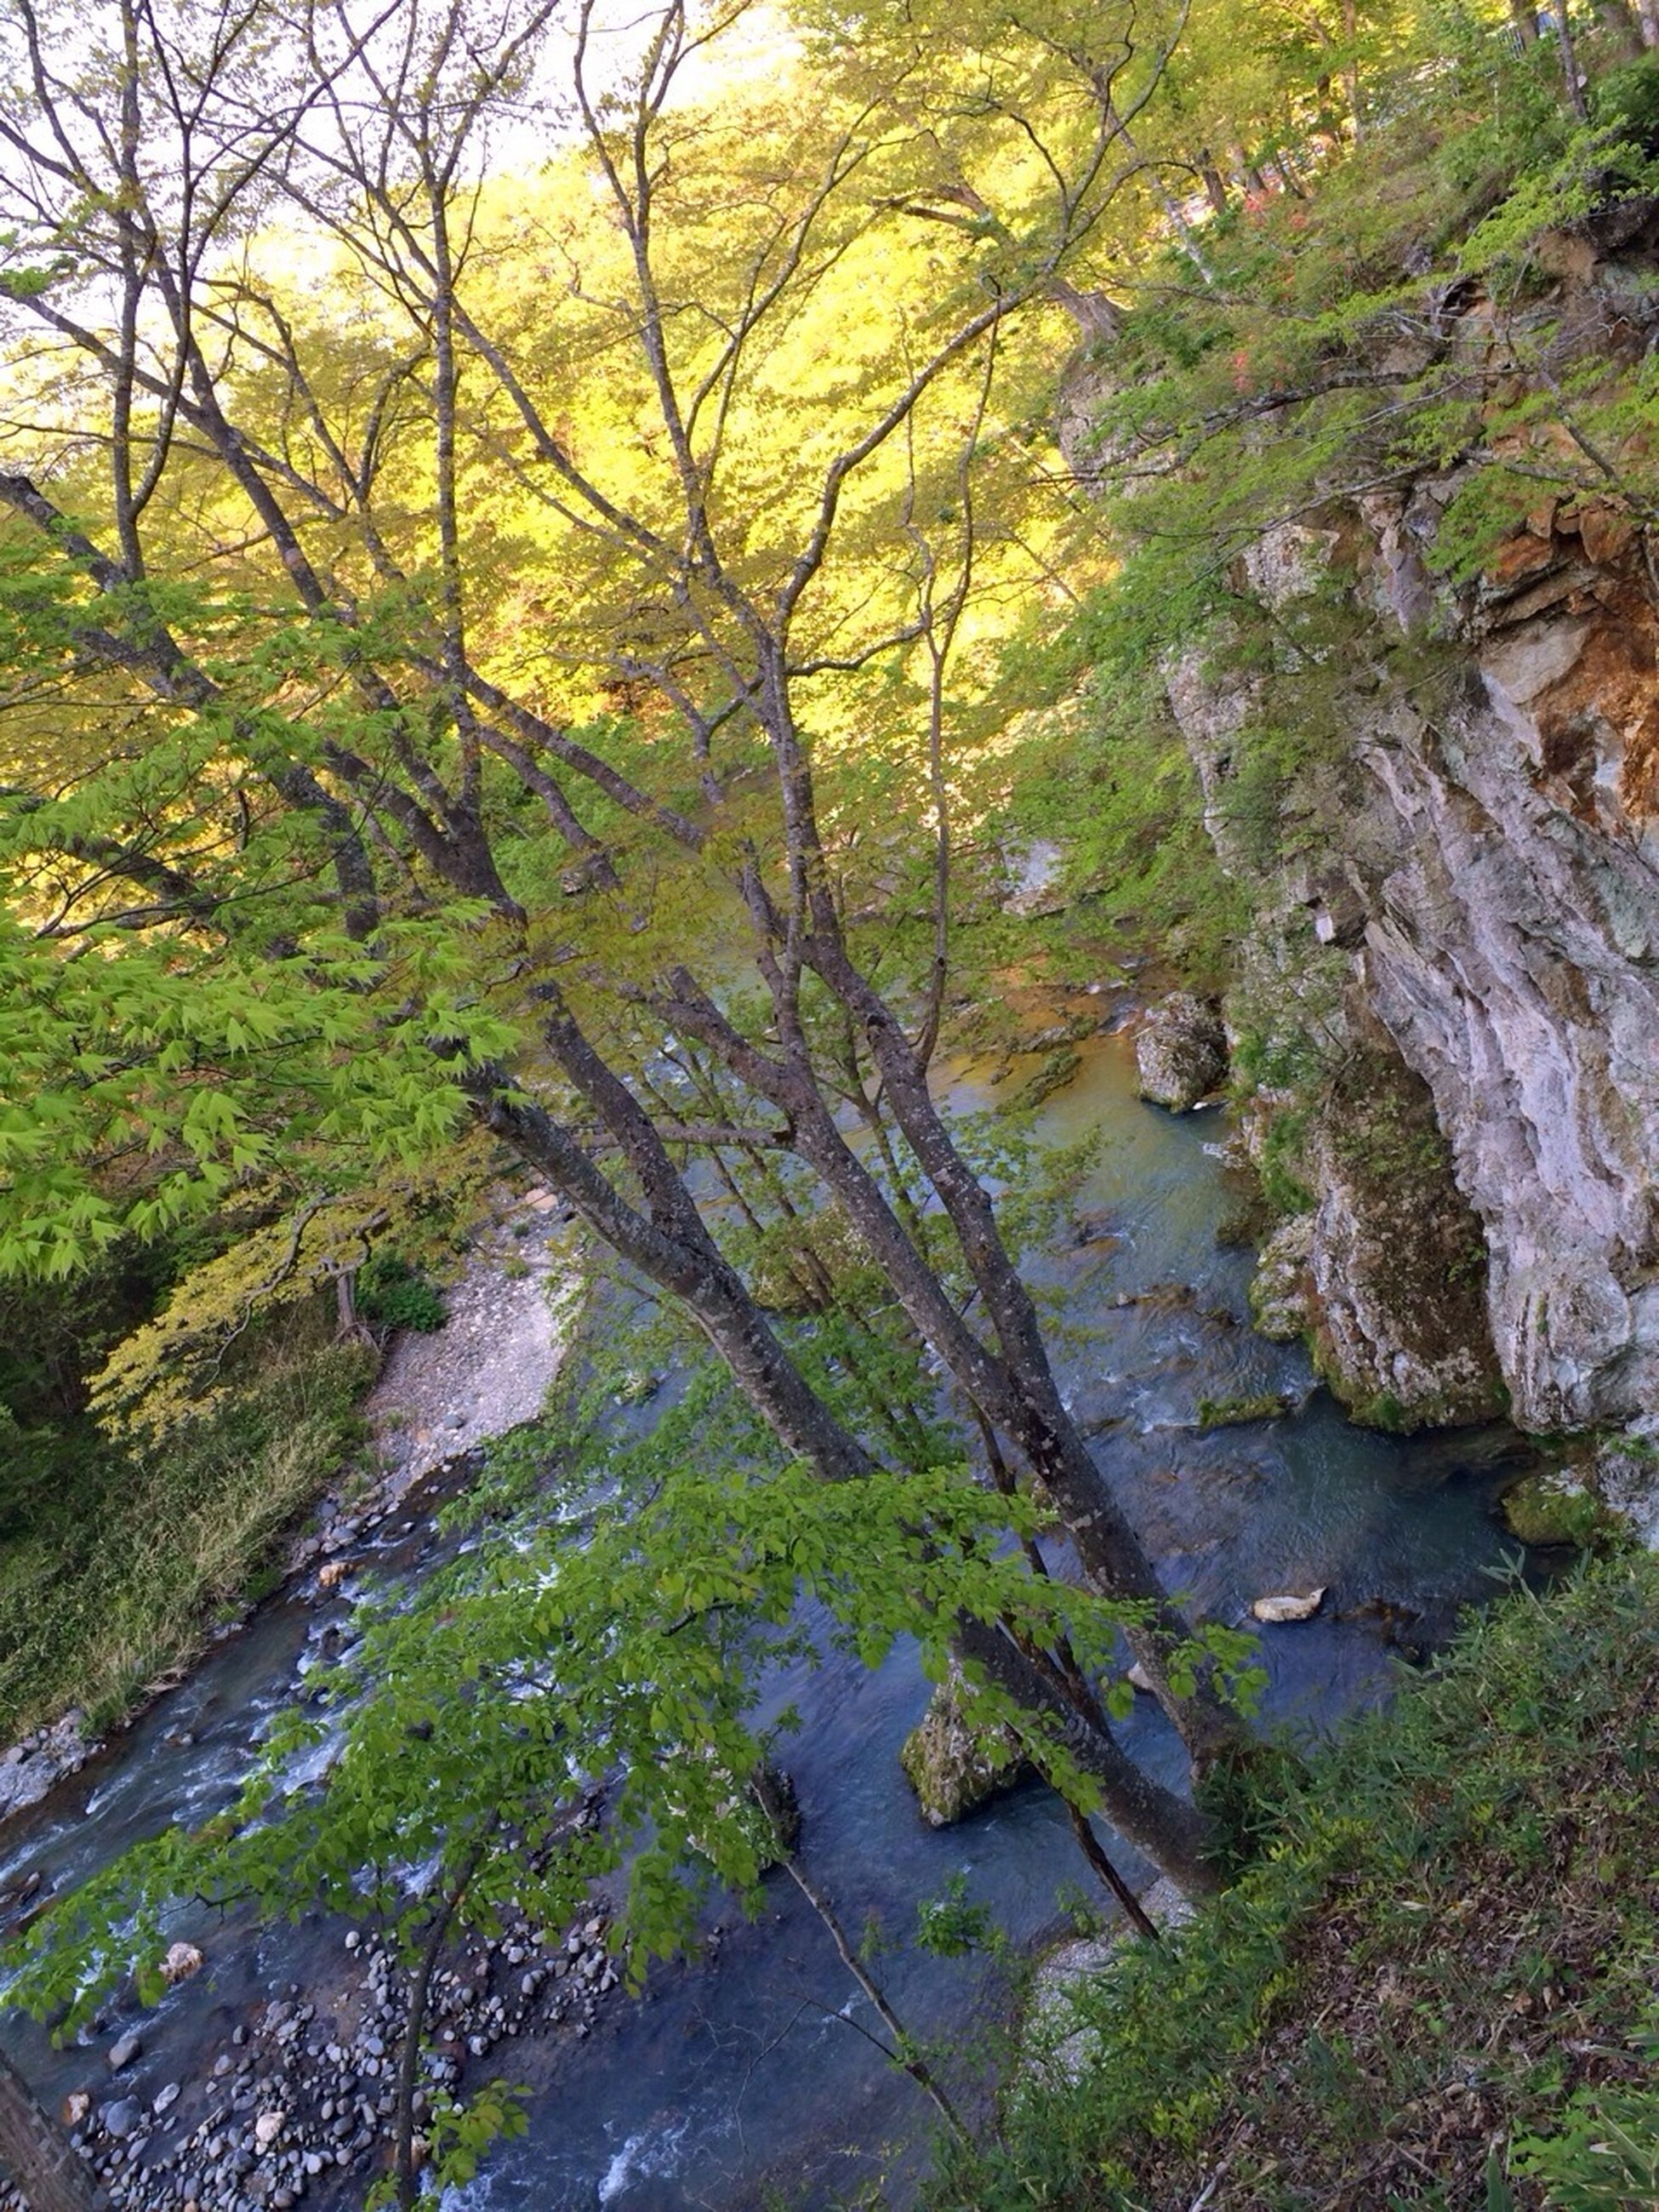 tree, water, tranquility, nature, tranquil scene, beauty in nature, scenics, stream, growth, rock - object, forest, branch, river, plant, non-urban scene, green color, outdoors, day, no people, idyllic